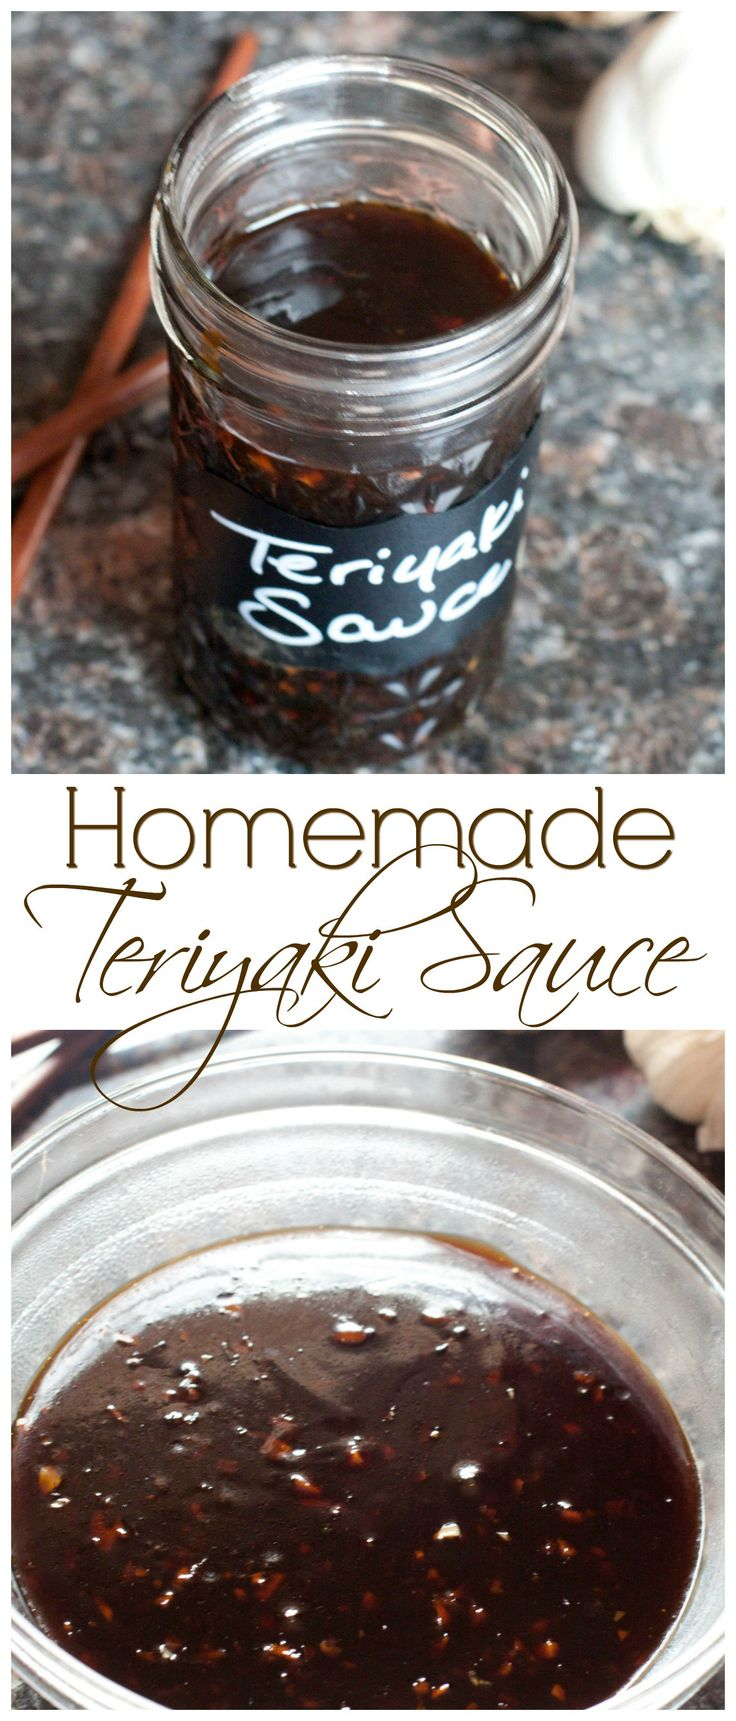 Best 25+ Homemade teriyaki sauce ideas on Pinterest